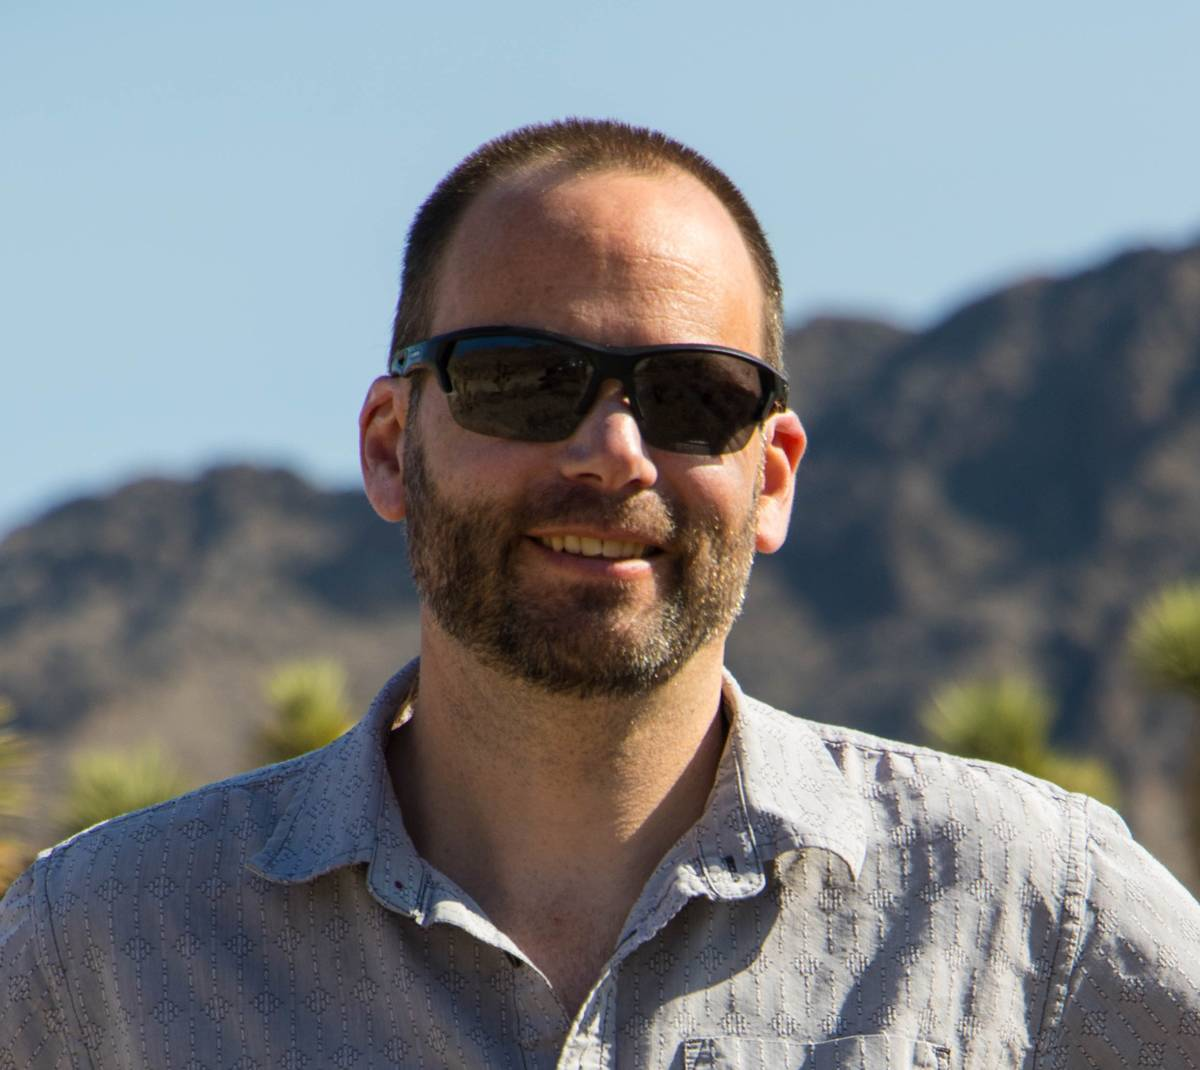 Matthew Lachniet is a UNLV climate scientist and lead researcher on a climate change study. (UNLV)